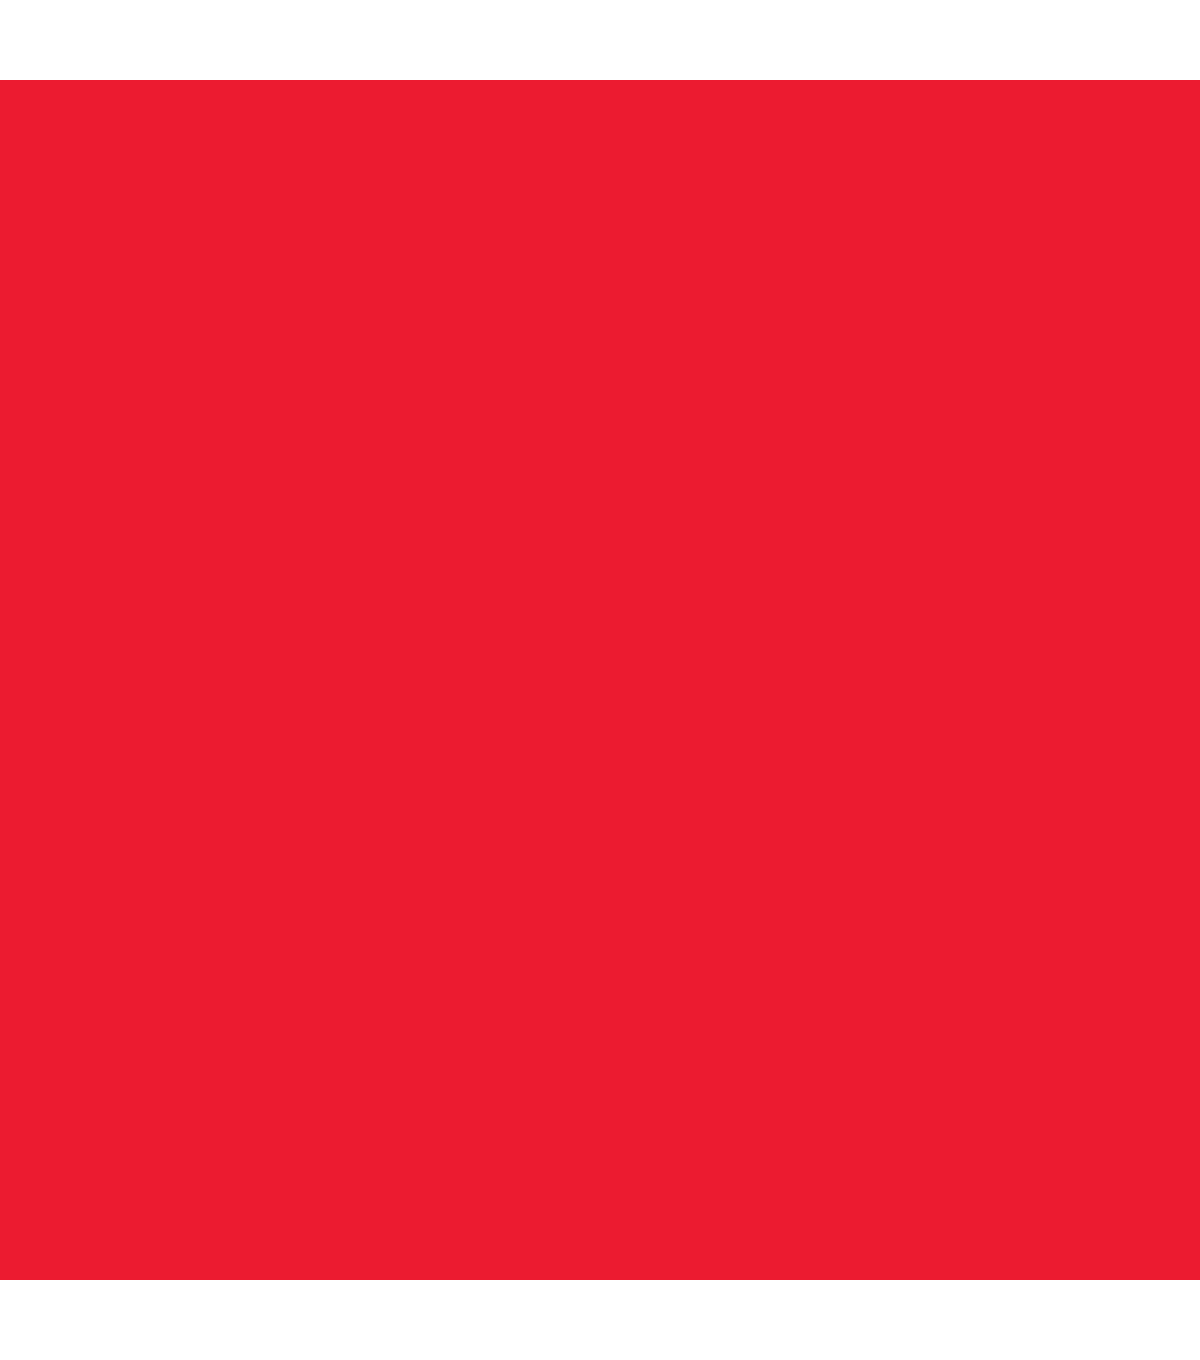 Apple Barrel Matte Acrylic Paint 16oz, Bright Red